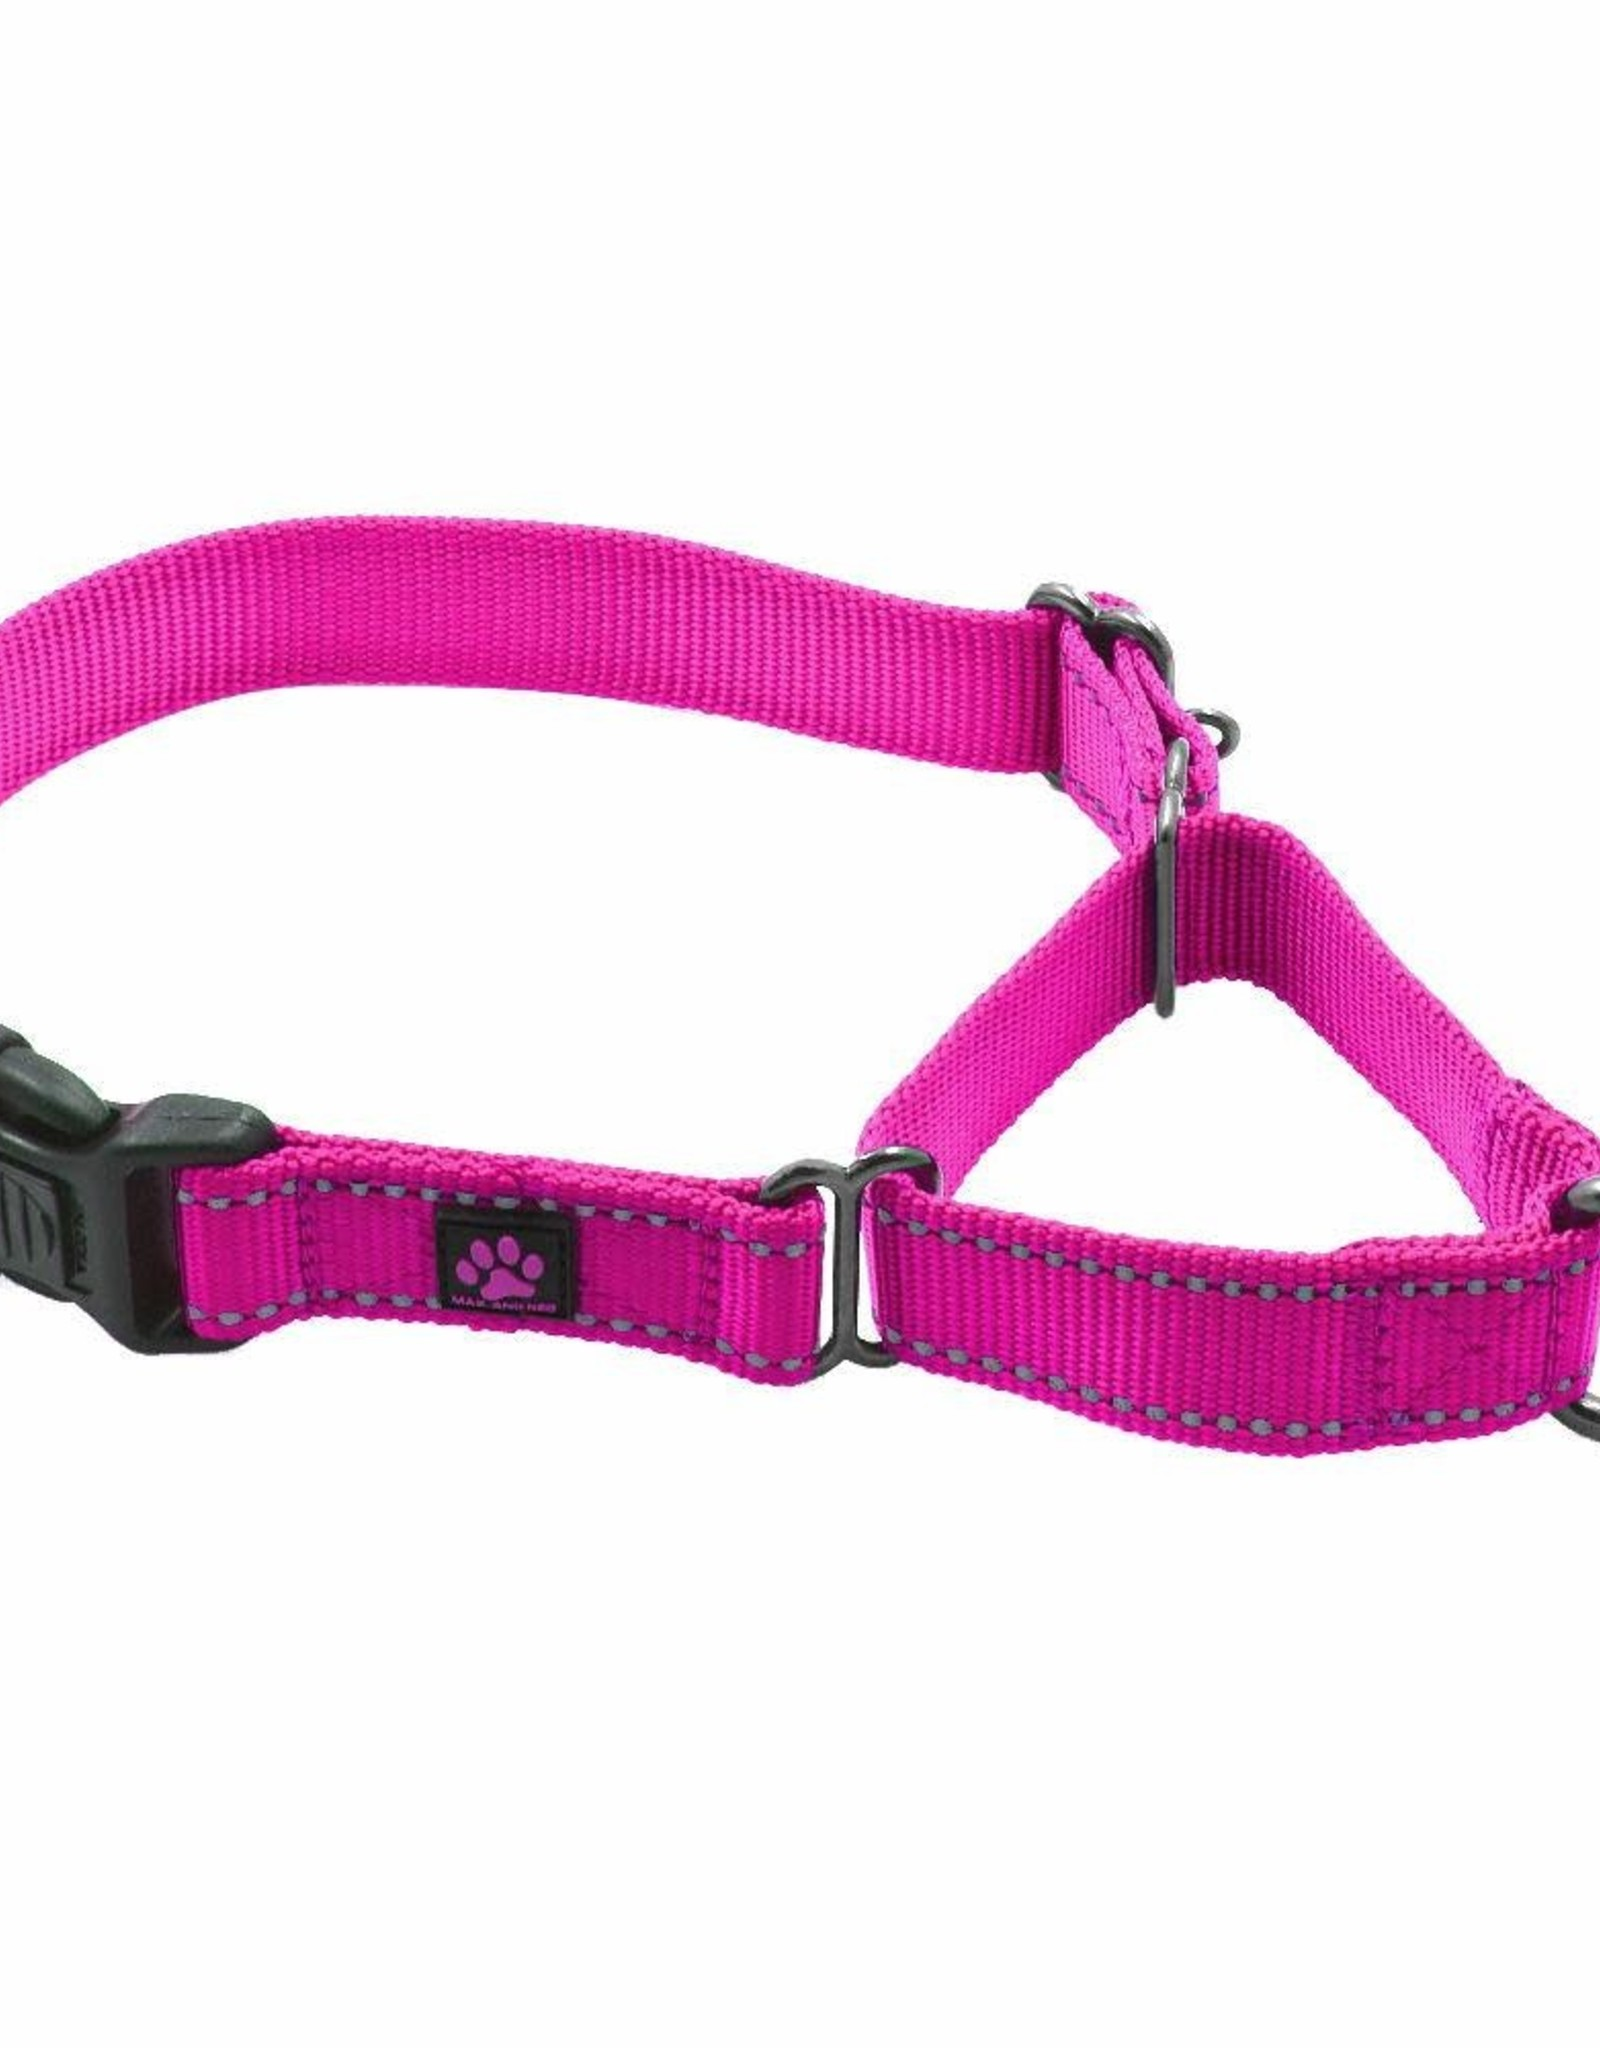 Max & Neo Nylon Martingale- Med Pink